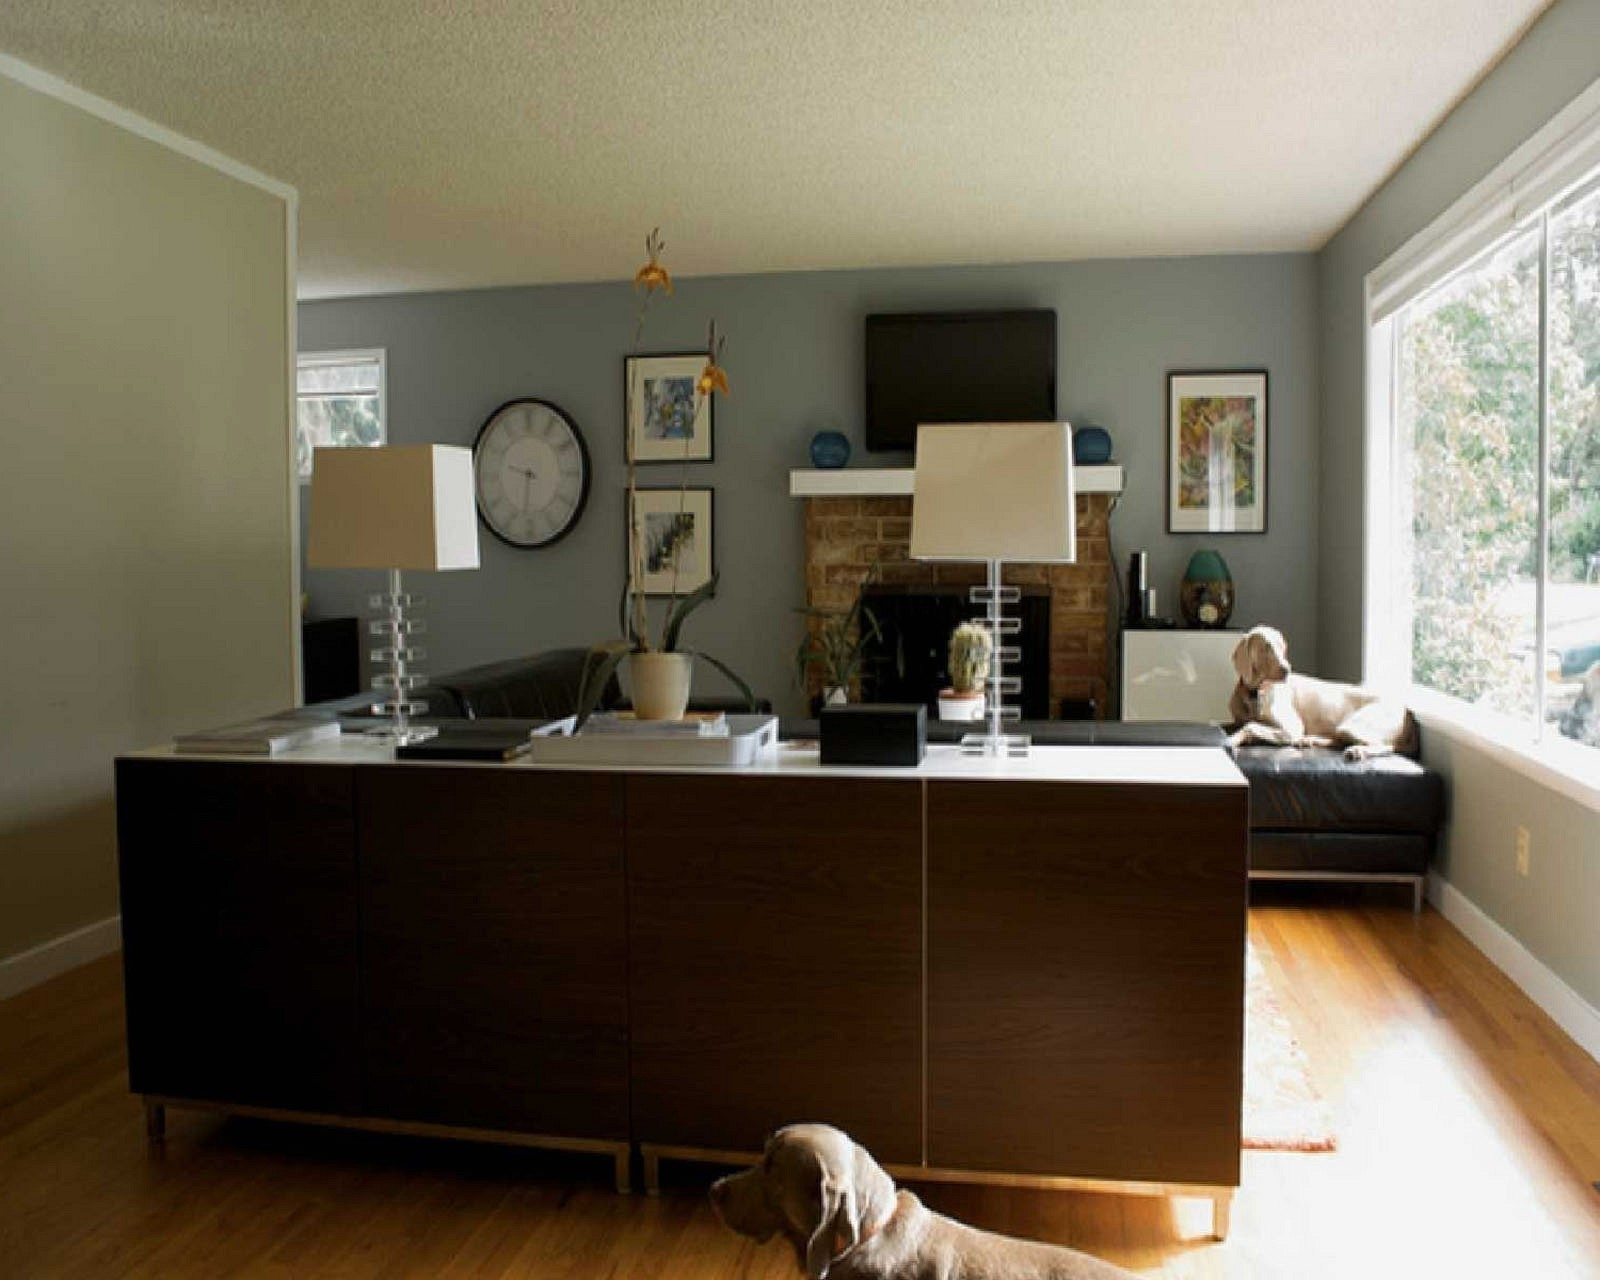 Blue Paint On The Wall Accent Wall Ideas For Living Room Dark Grey With Latest Gray Wall Accents (View 12 of 15)